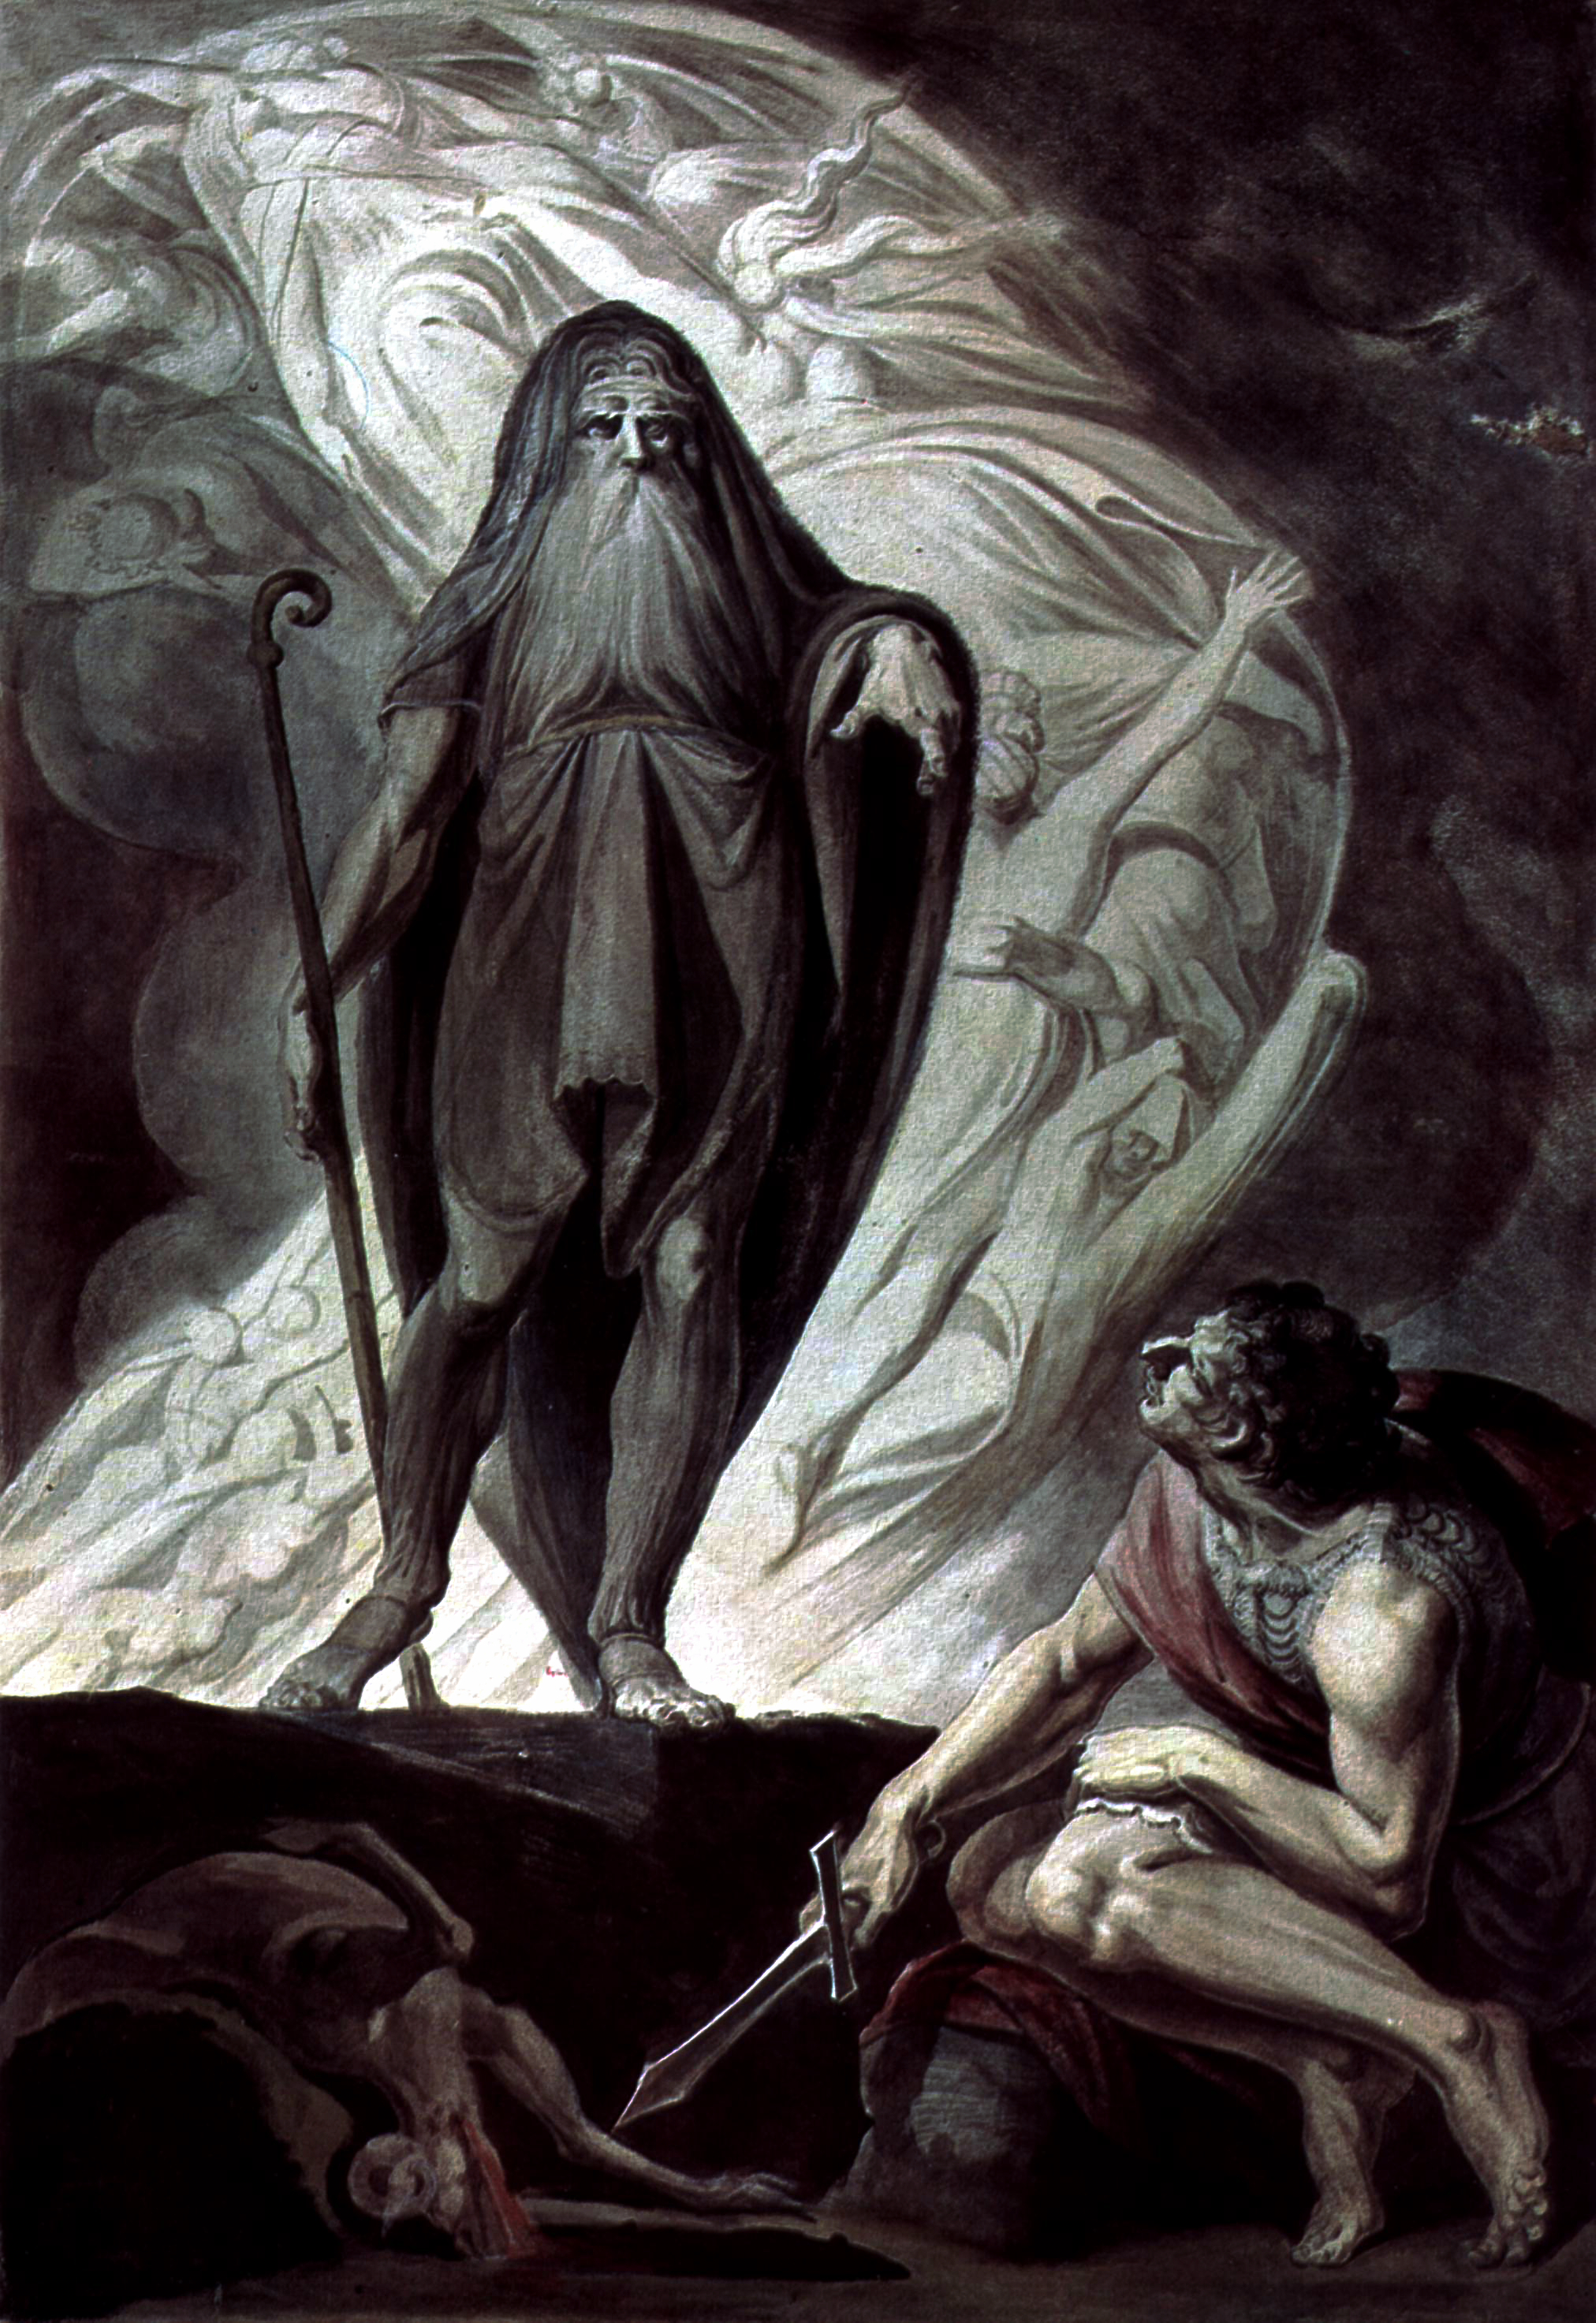 The Swiss artist Fuseli studied in Rome before settling in England in 1779, where he became famous for his paintings of literary themes. A friend of Mary Wollstonecraft and William Blake, he was elected Professor of Painting and Keeper of the Royal Academy. Fuseli had been fascinated by Homer's Odyssey since the 1760s. Published as an engraving in 1804, this composition depicts the visit of Odysseus to Teiresias in the Underworld. Between the two is the shadow of Odysseus's mother Anticleia. https://upload.wikimedia.org/wikipedia/commons/2/24/Johann_Heinrich_F%C3%BCssli_063.jpg